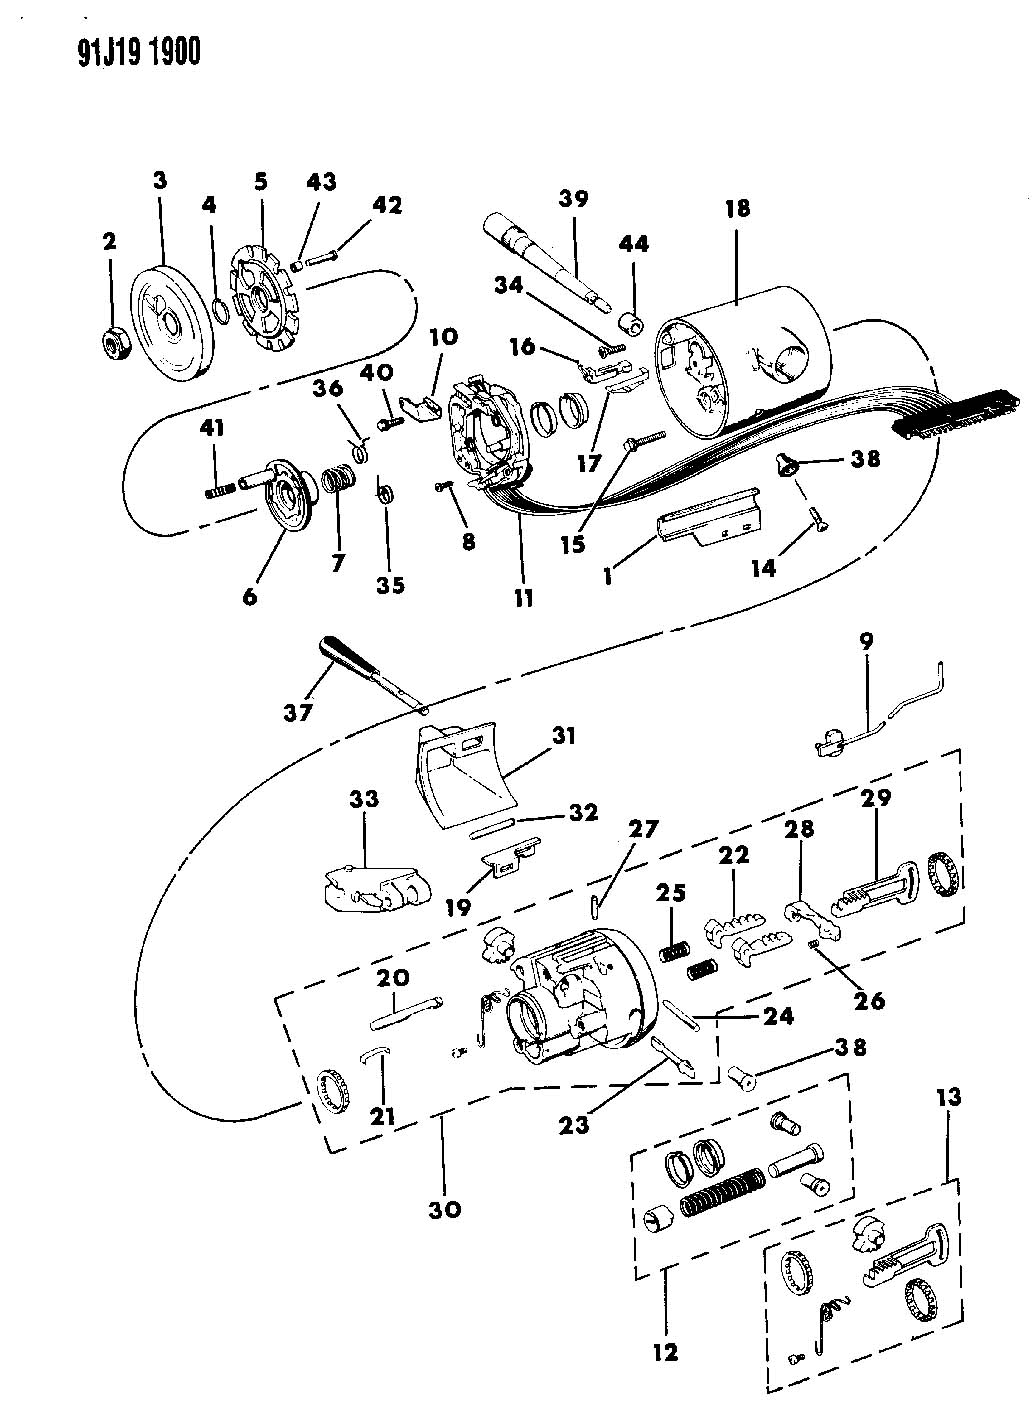 jeep comanche steering column diagram